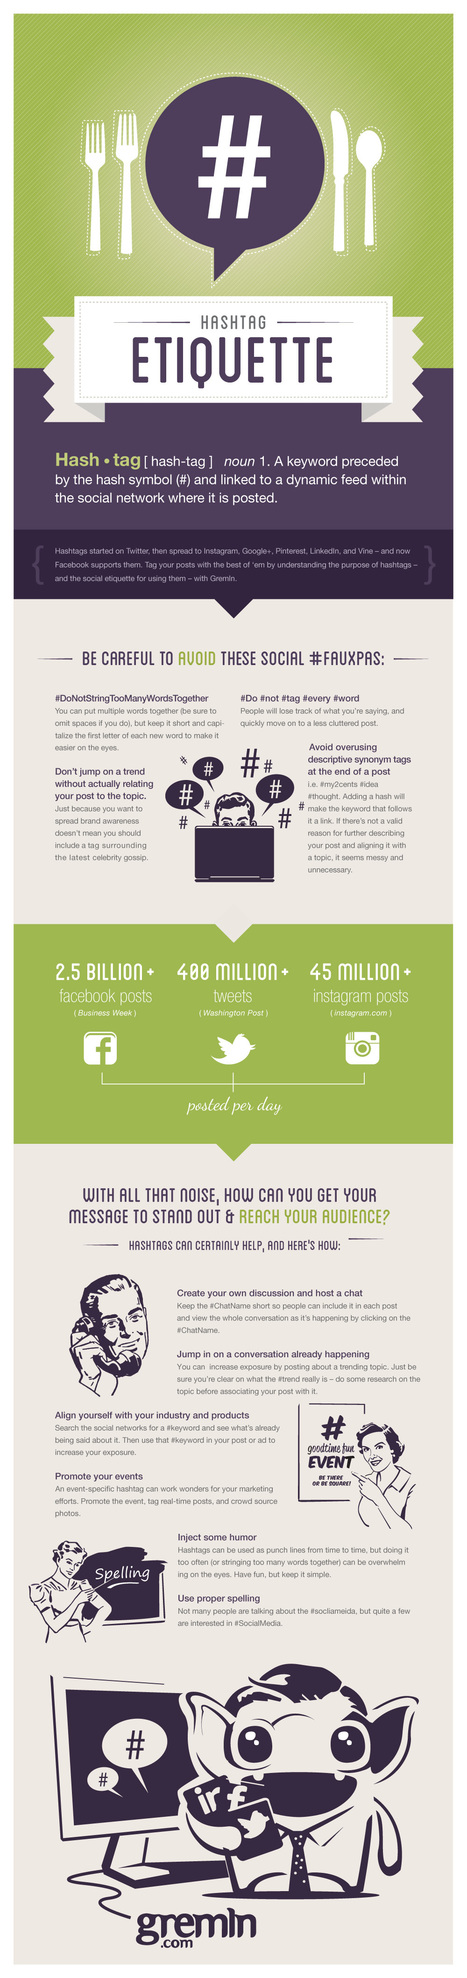 Hashtag Etiquette: The Dos and Don'ts of Social Media Engagement [INFOGRAPHIC] | ELA Technology Tools | Scoop.it